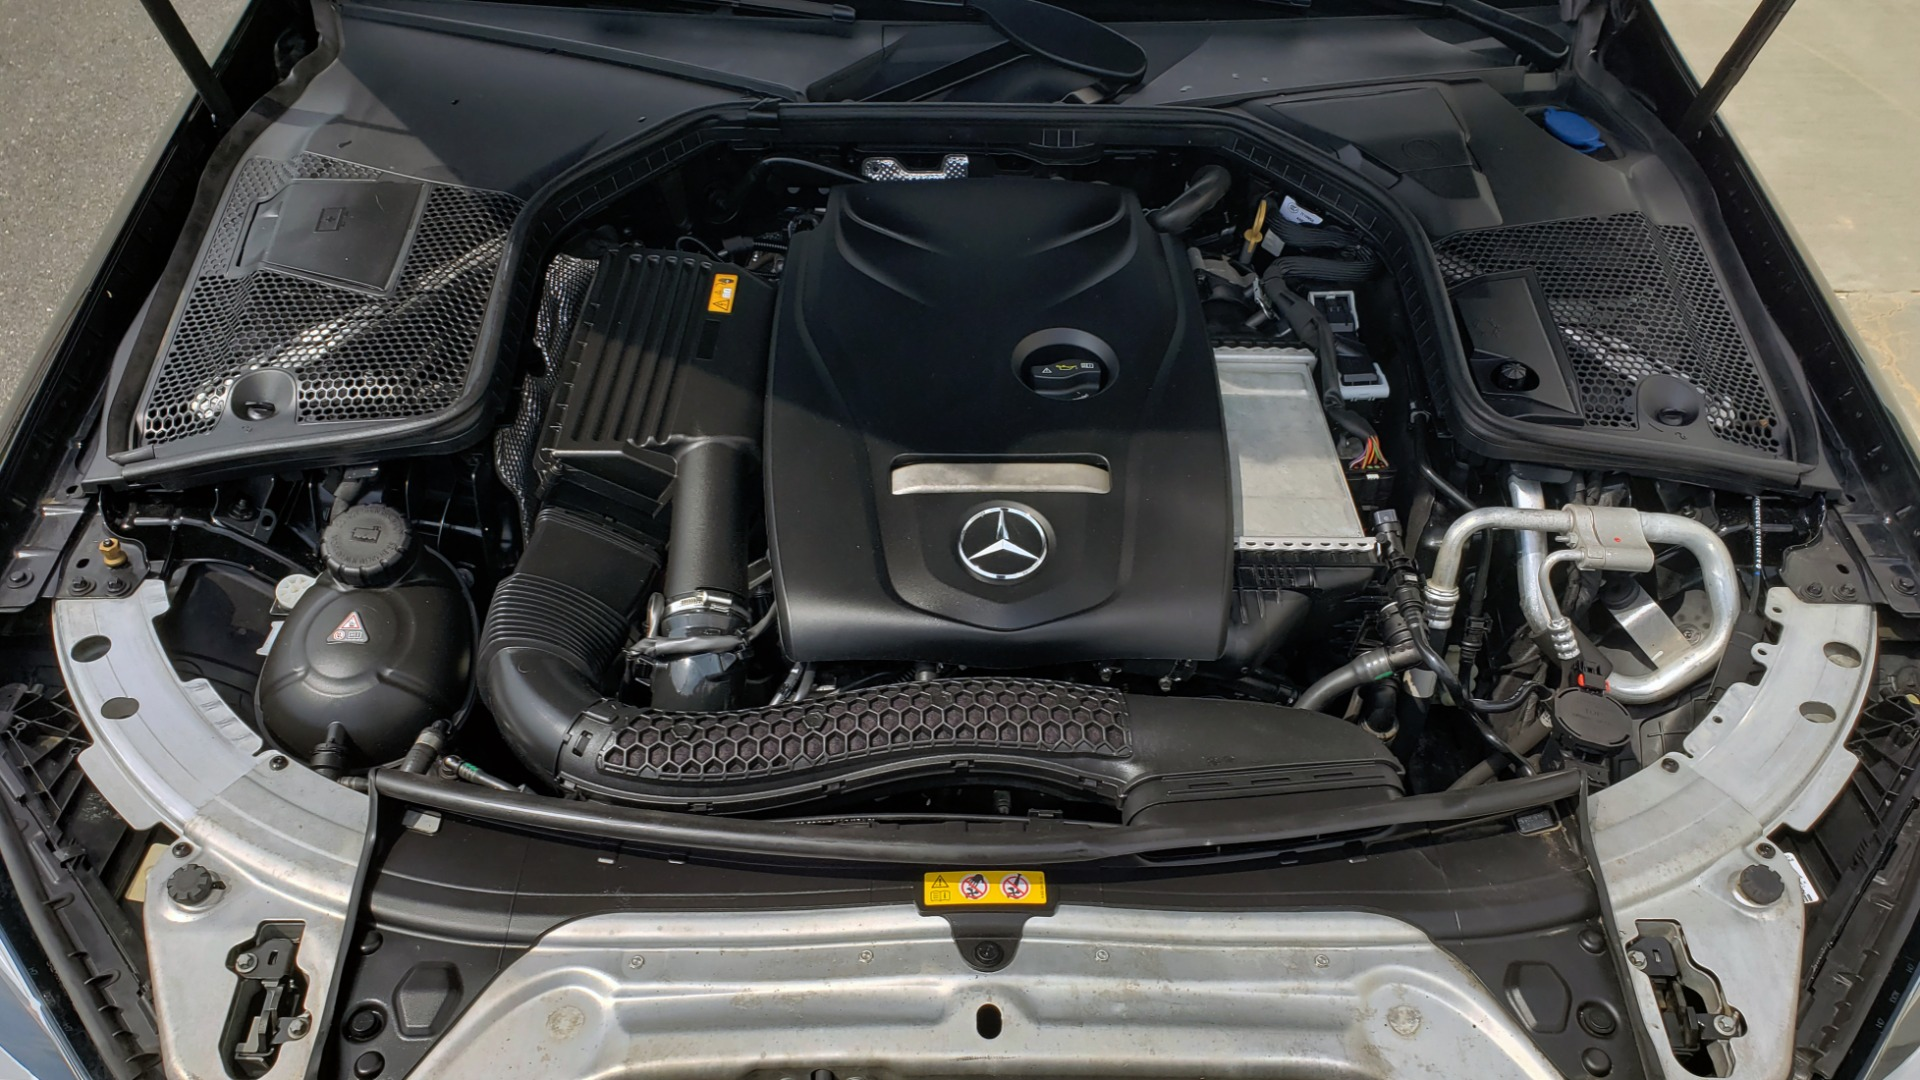 Used 2018 Mercedes-Benz C-CLASS C 300 PREMIUM / HTD STS / APPLE CARPLAY / 18IN WHEELS / REARVIEW for sale $24,795 at Formula Imports in Charlotte NC 28227 14